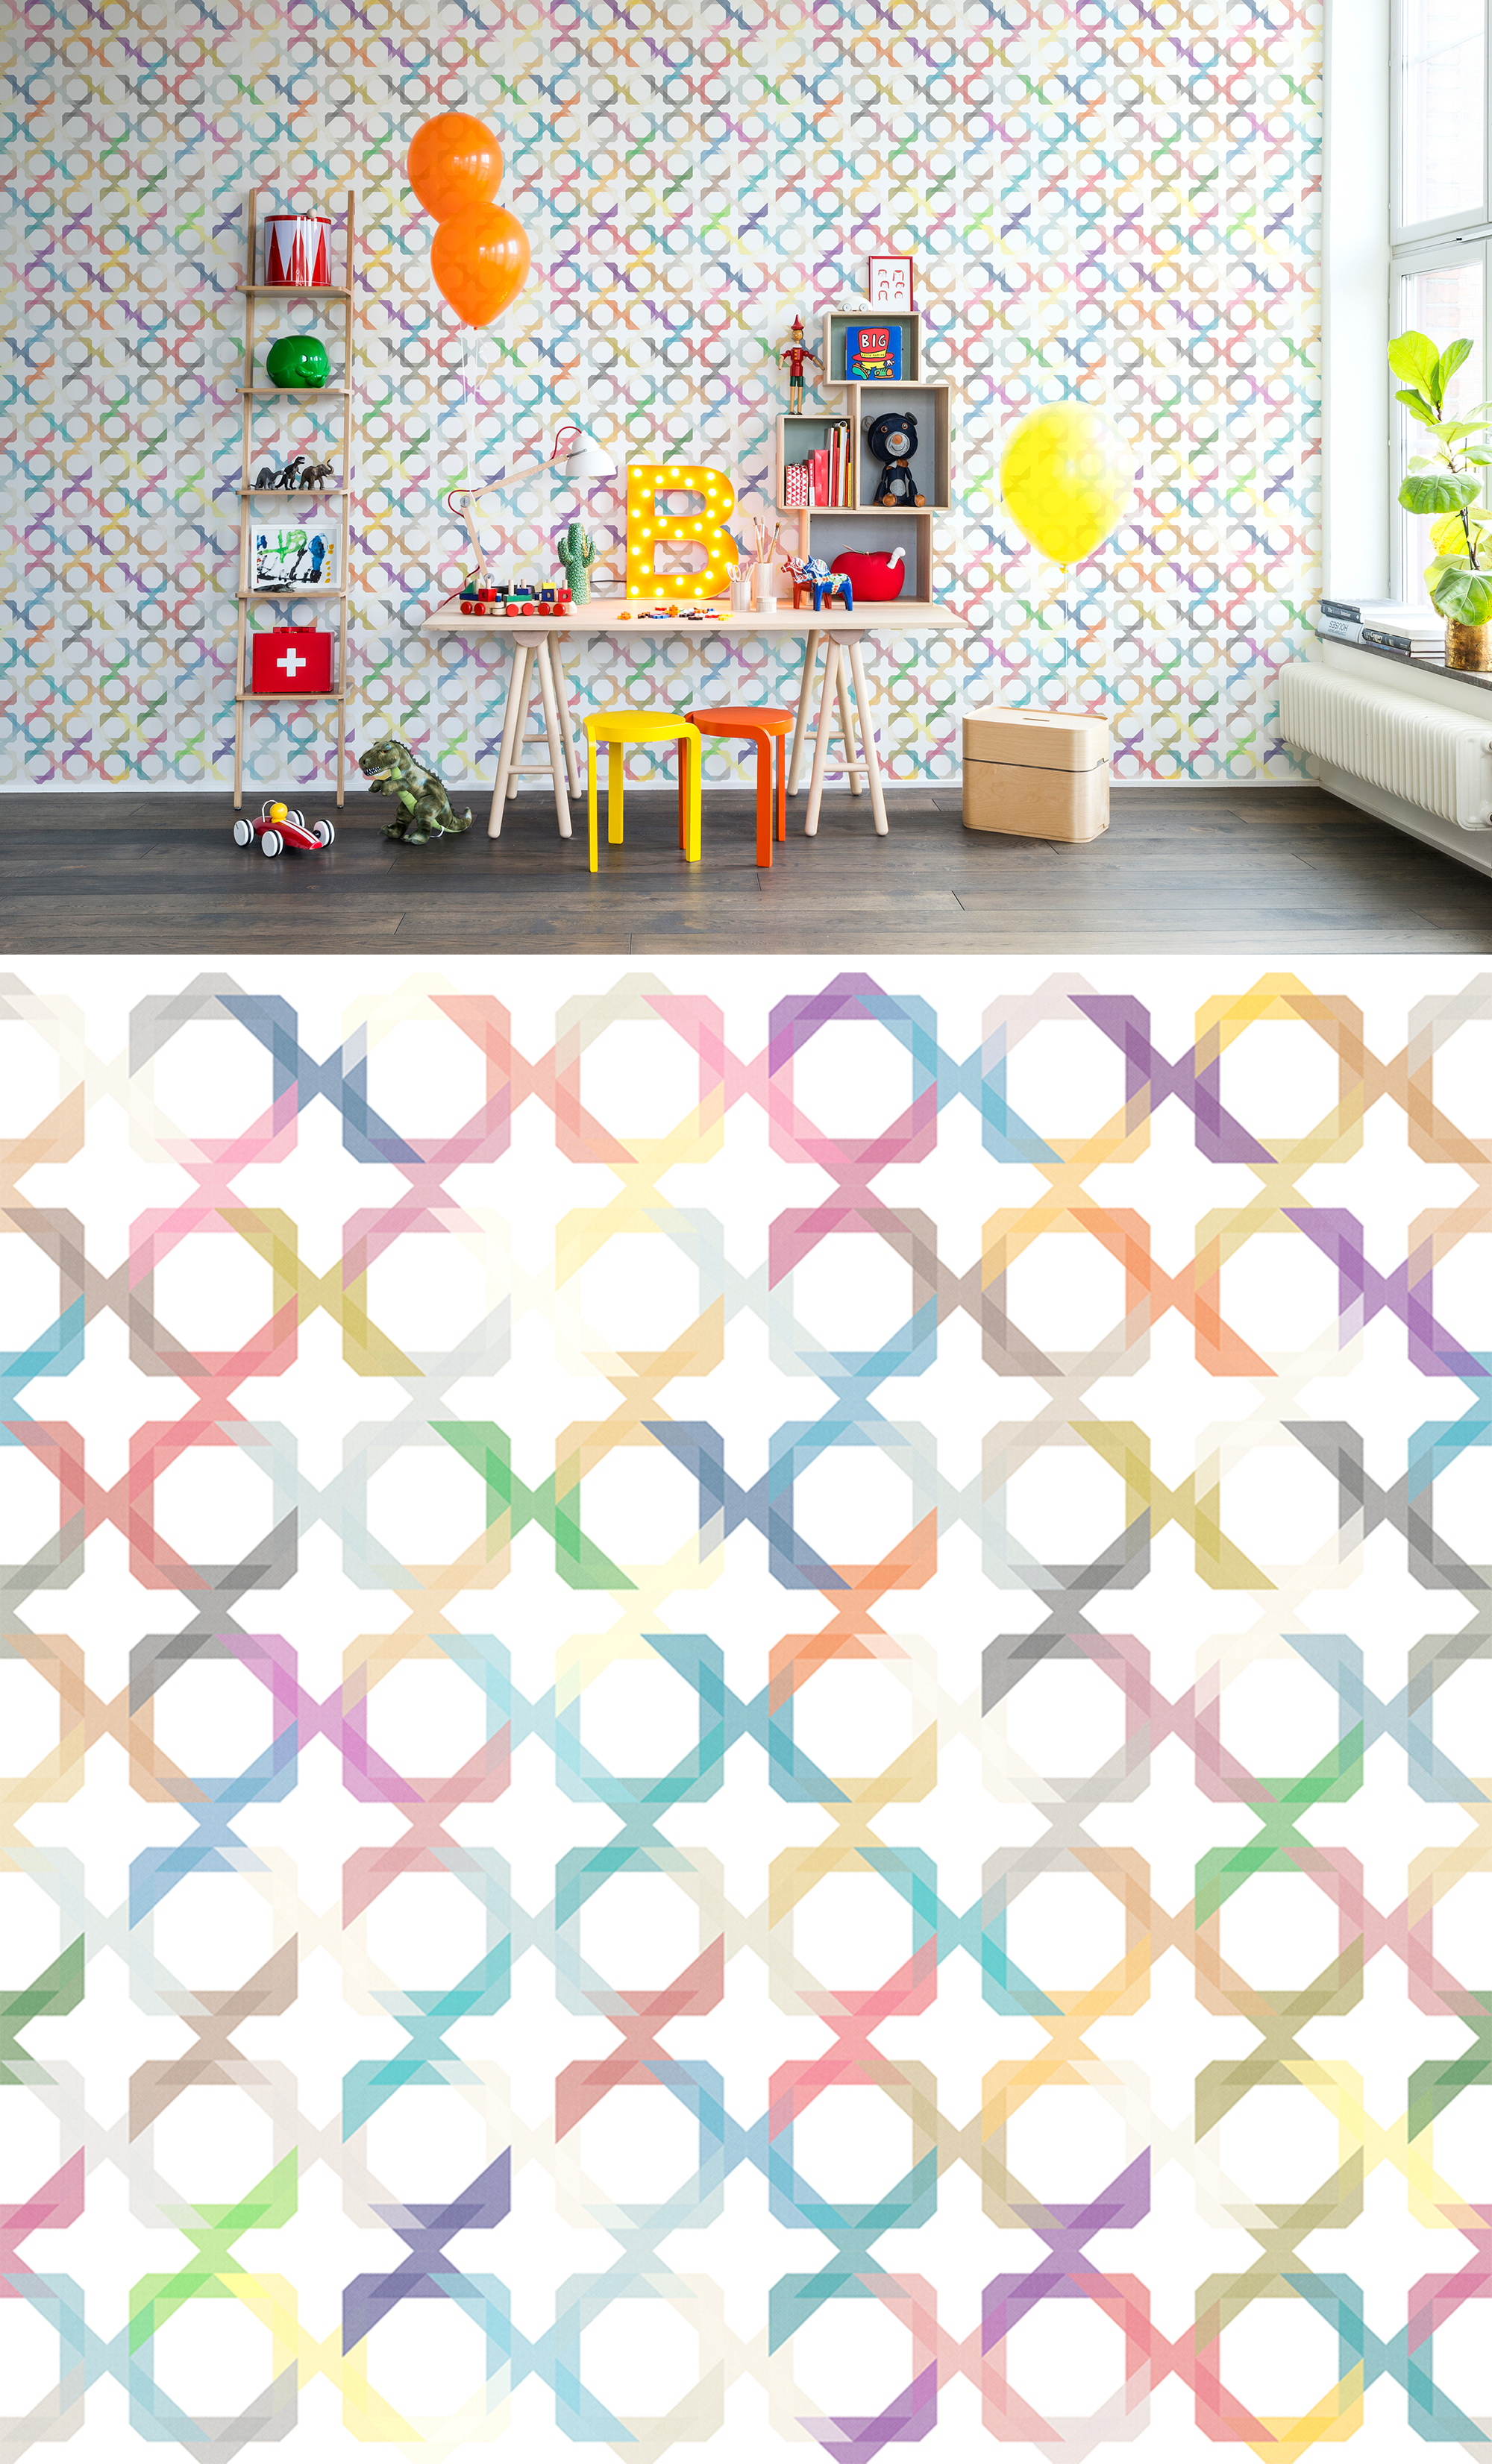 WALL-MURAL-COLOURFUL-PLAYFUL-TRELLIS-LINES-GRAPHICALLY-PATTERN-C-wallpaper-wp44012612